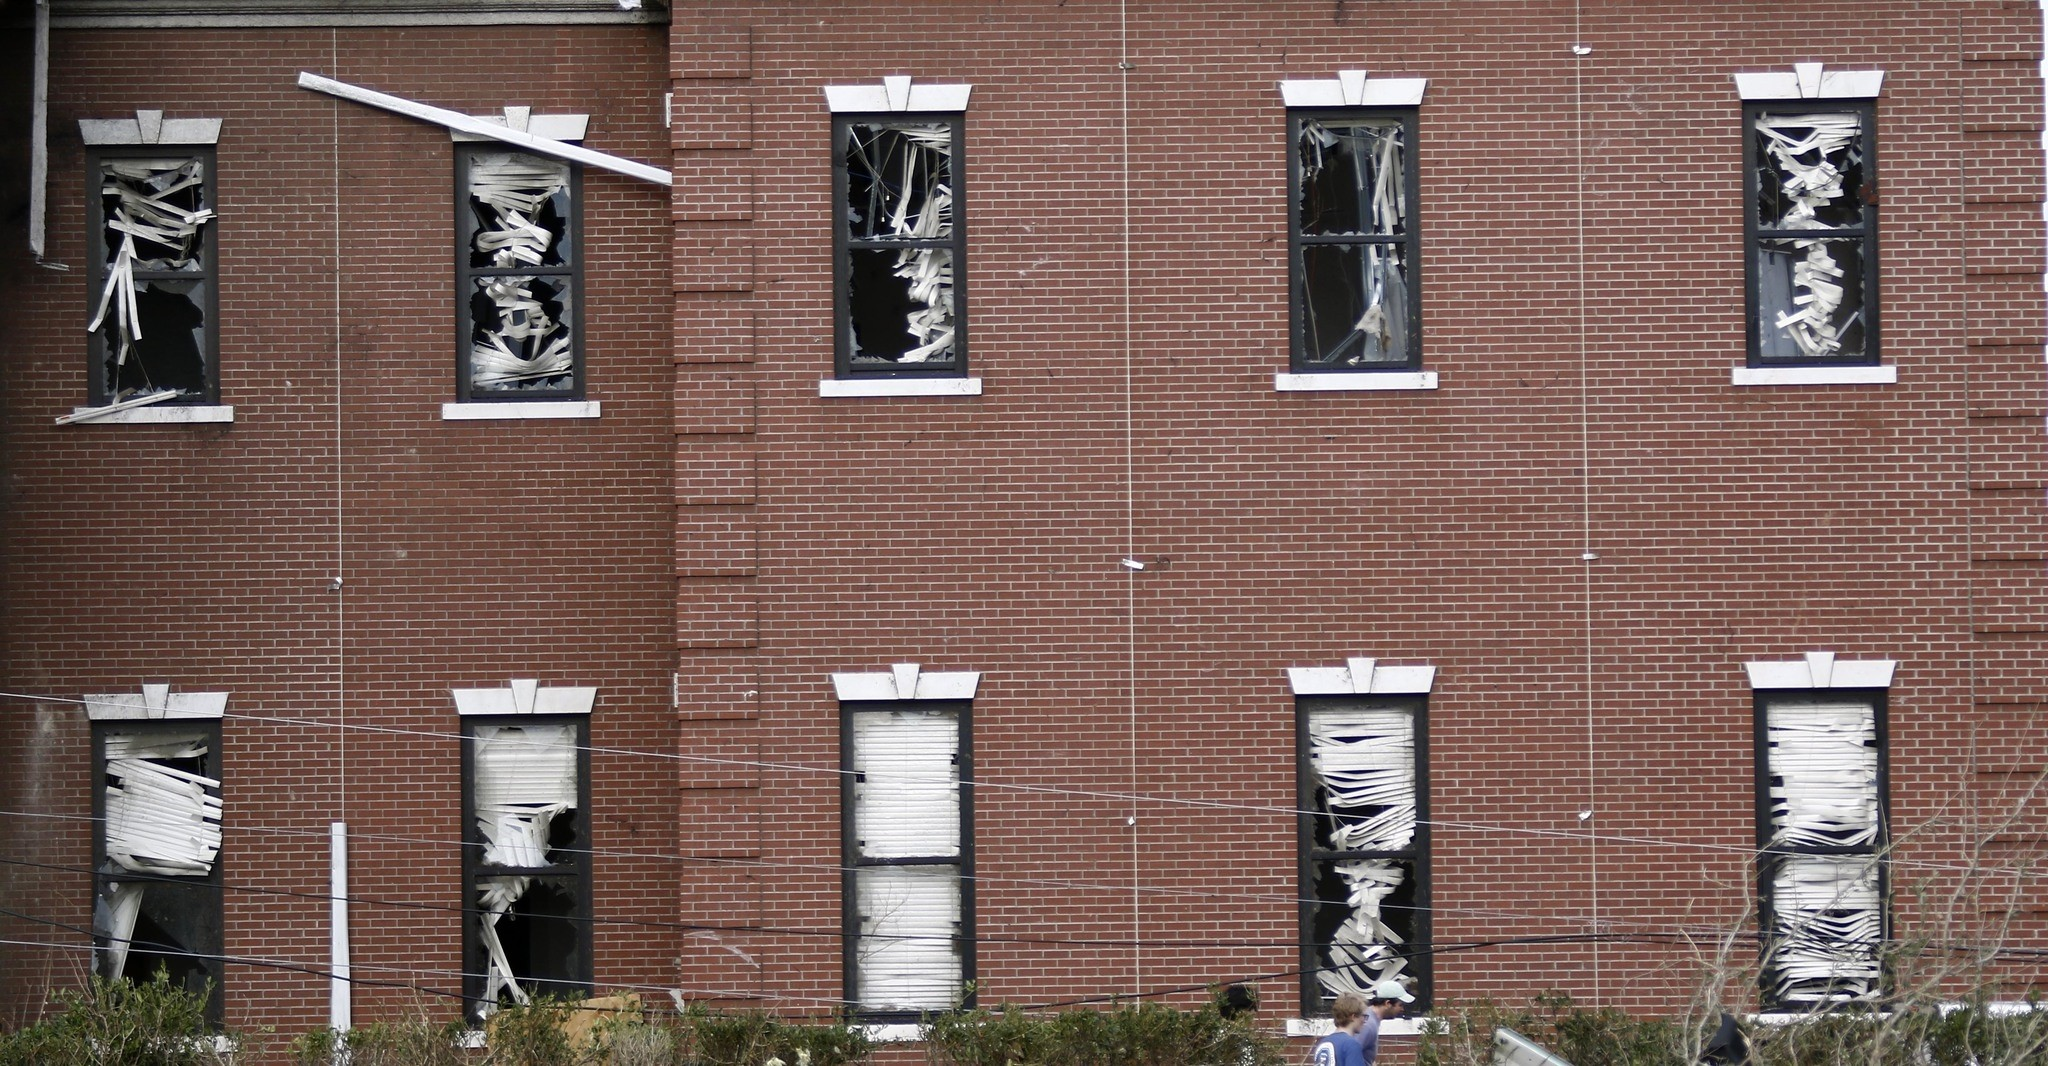 The damaged blinds in the windows of William Carey University's School of Business are seen in Hattiesburg, Miss., Saturday, Jan. 21, 2017. (AP Photo)